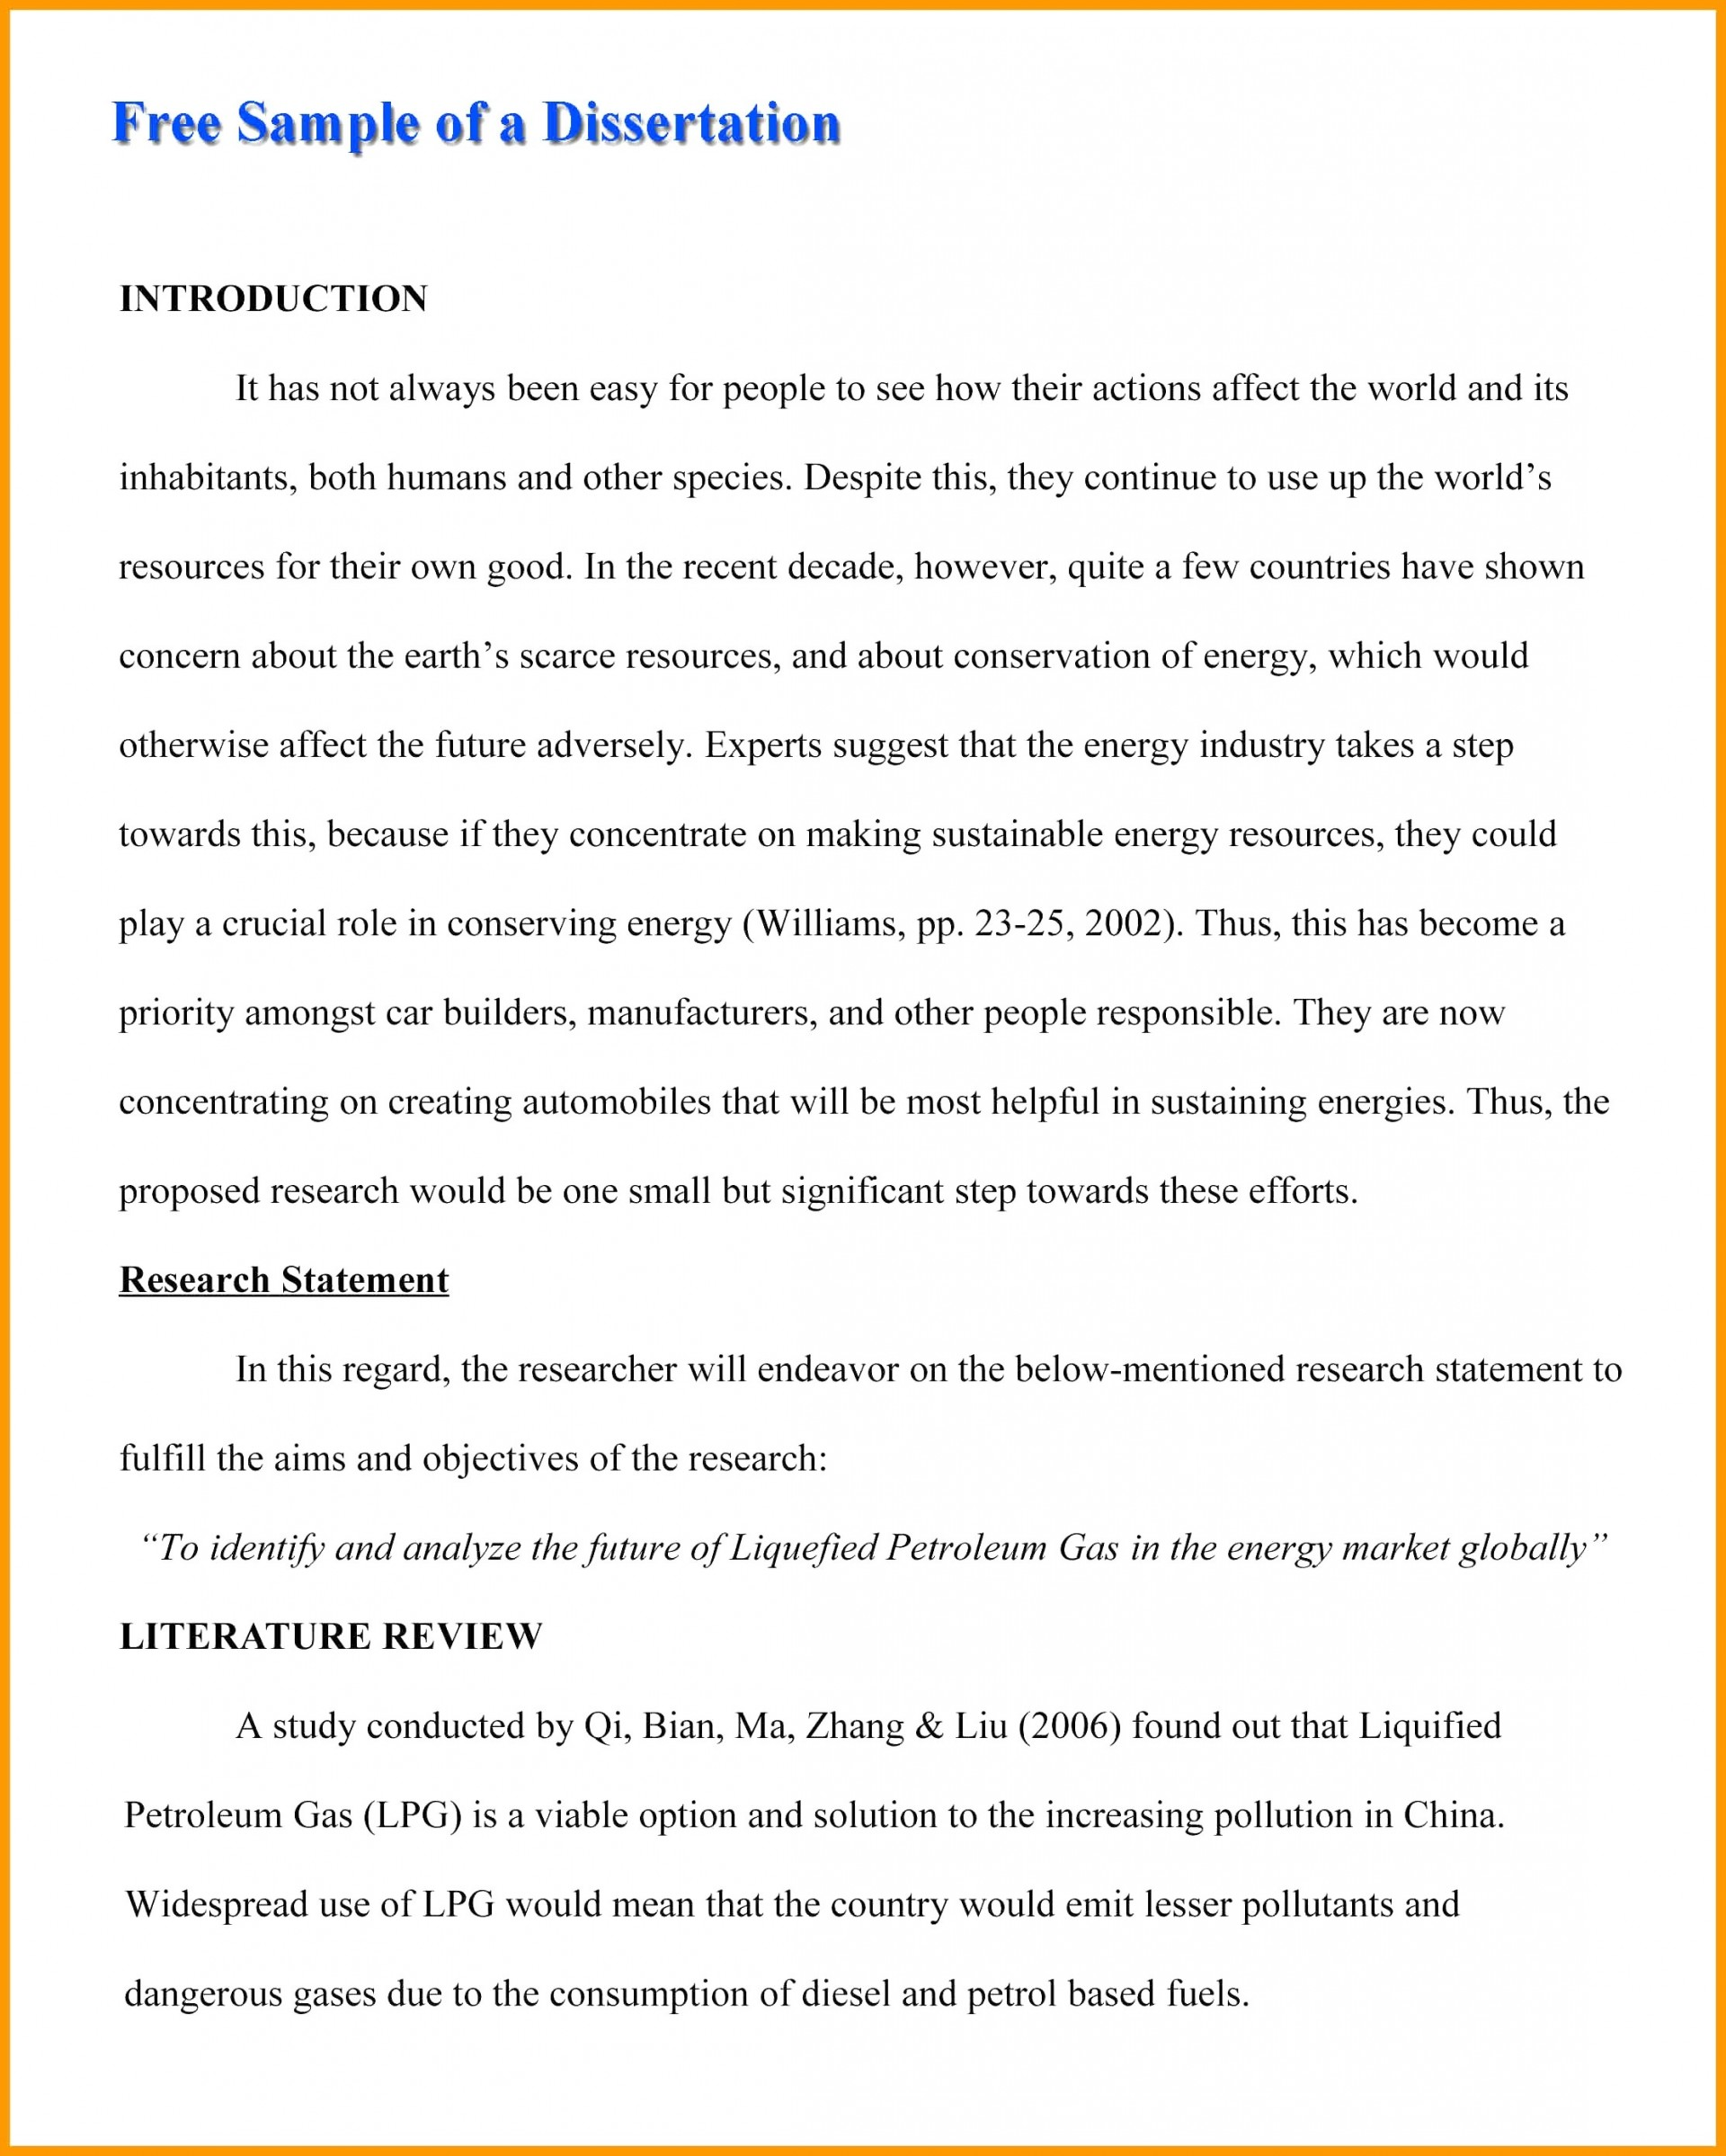 004 War On Drugs Research Paper Outline Filename Books Historical Pertaining To History Essay Impressive Rubric Middle School Topics Before 1500 1920